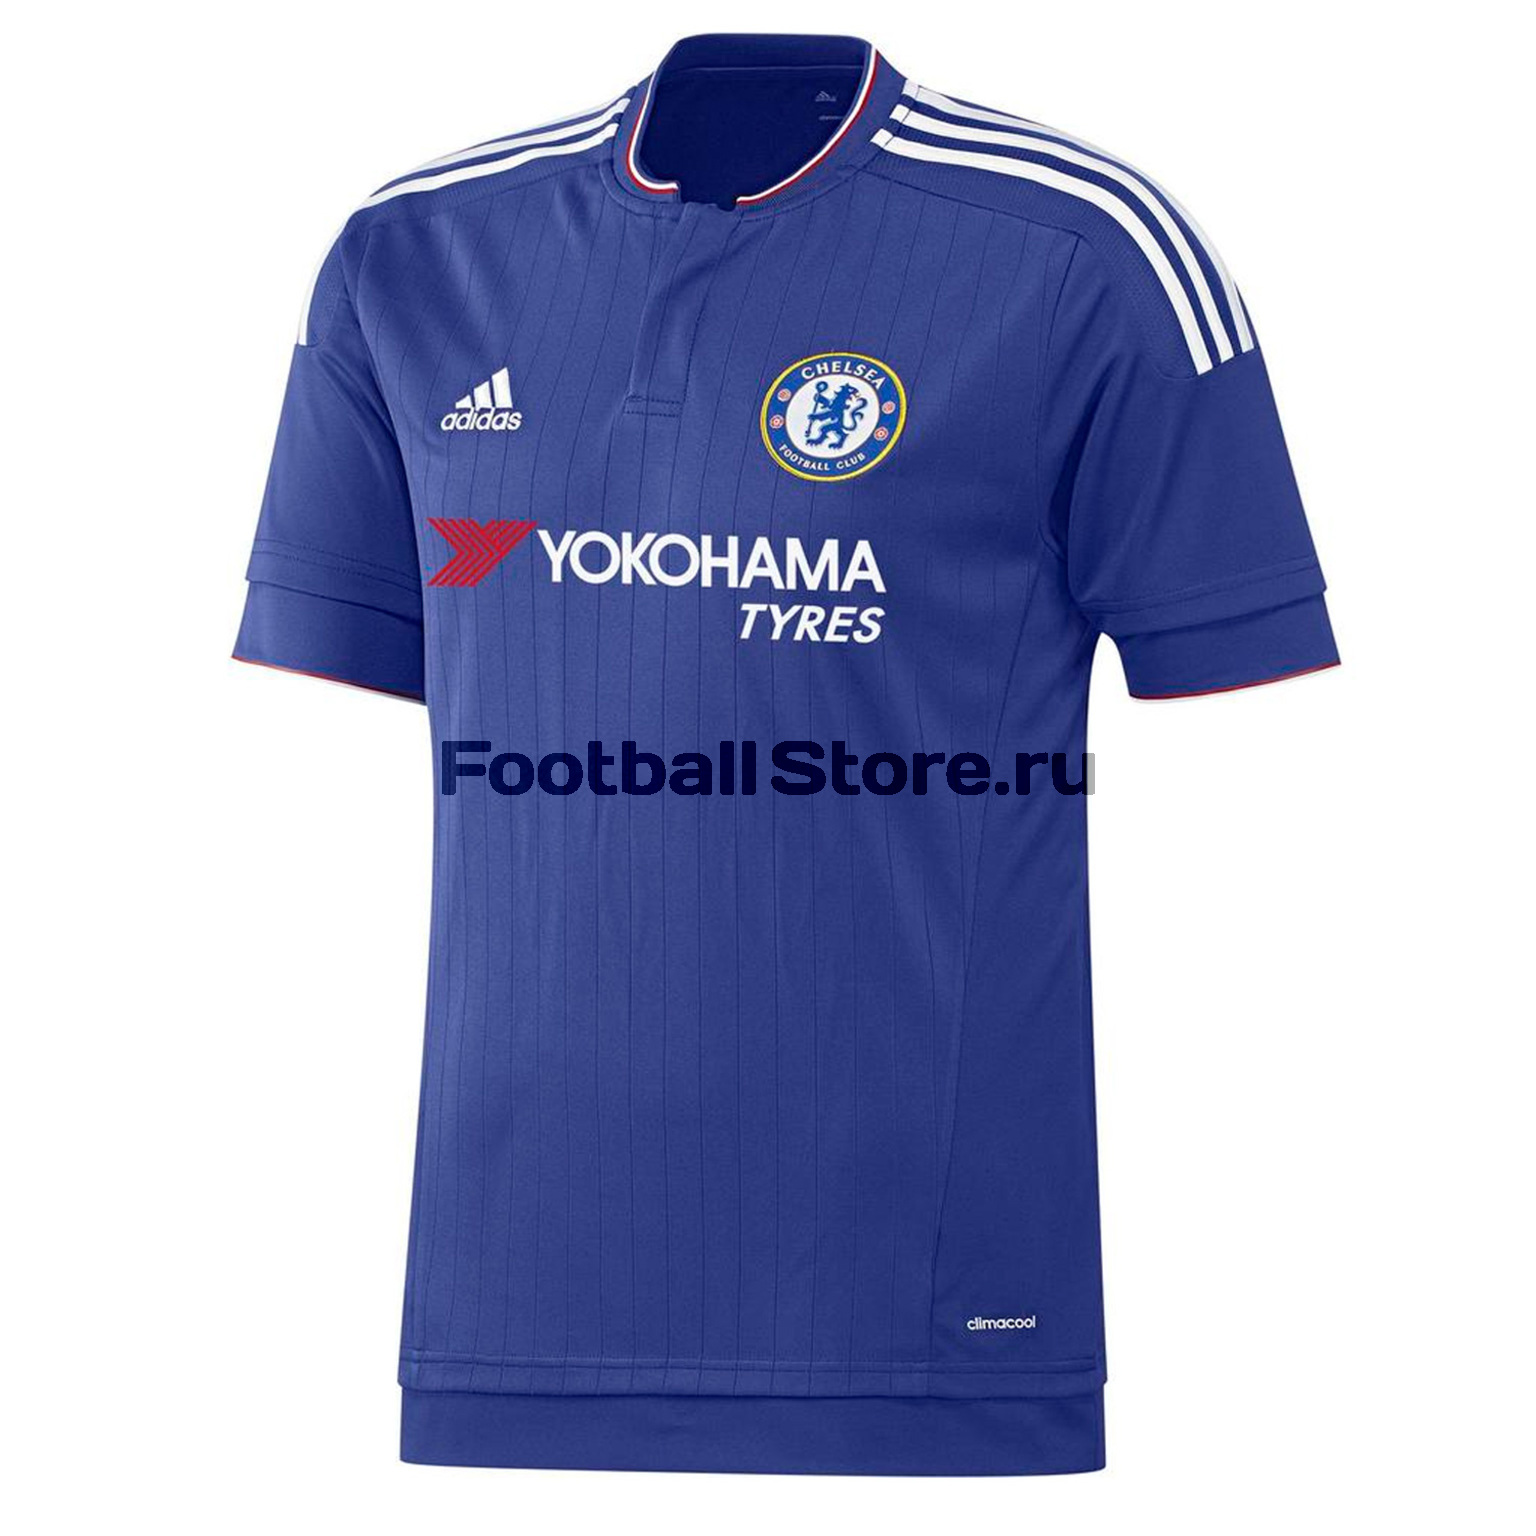 Chelsea Adidas Футболка Adidas FC Chelsea Home JSY AH5104 human performance engineering легинсы